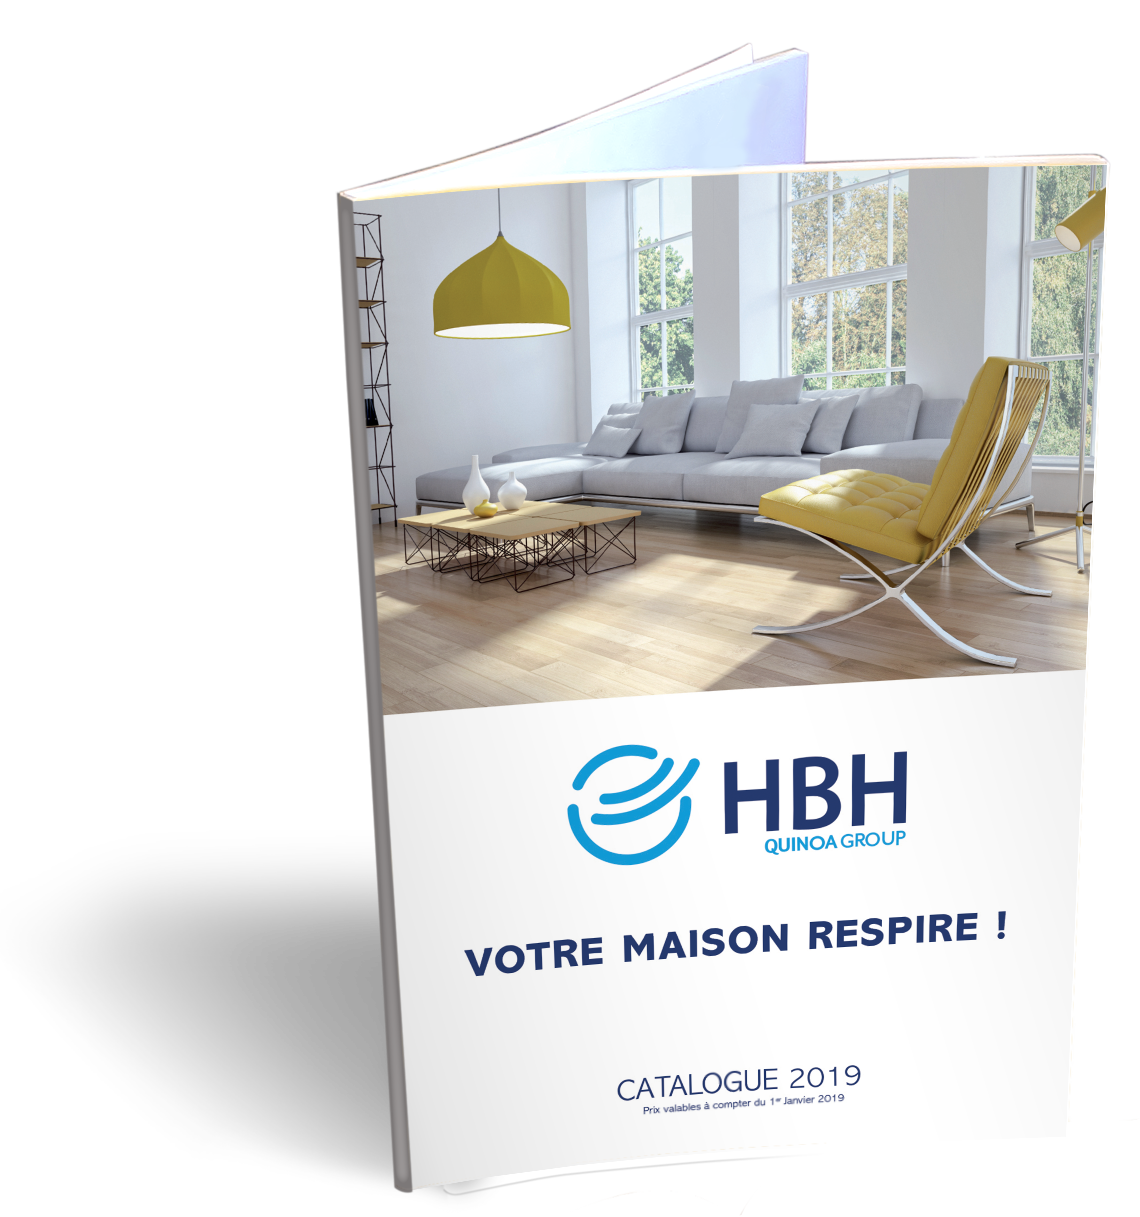 catalogue-hbh-2019